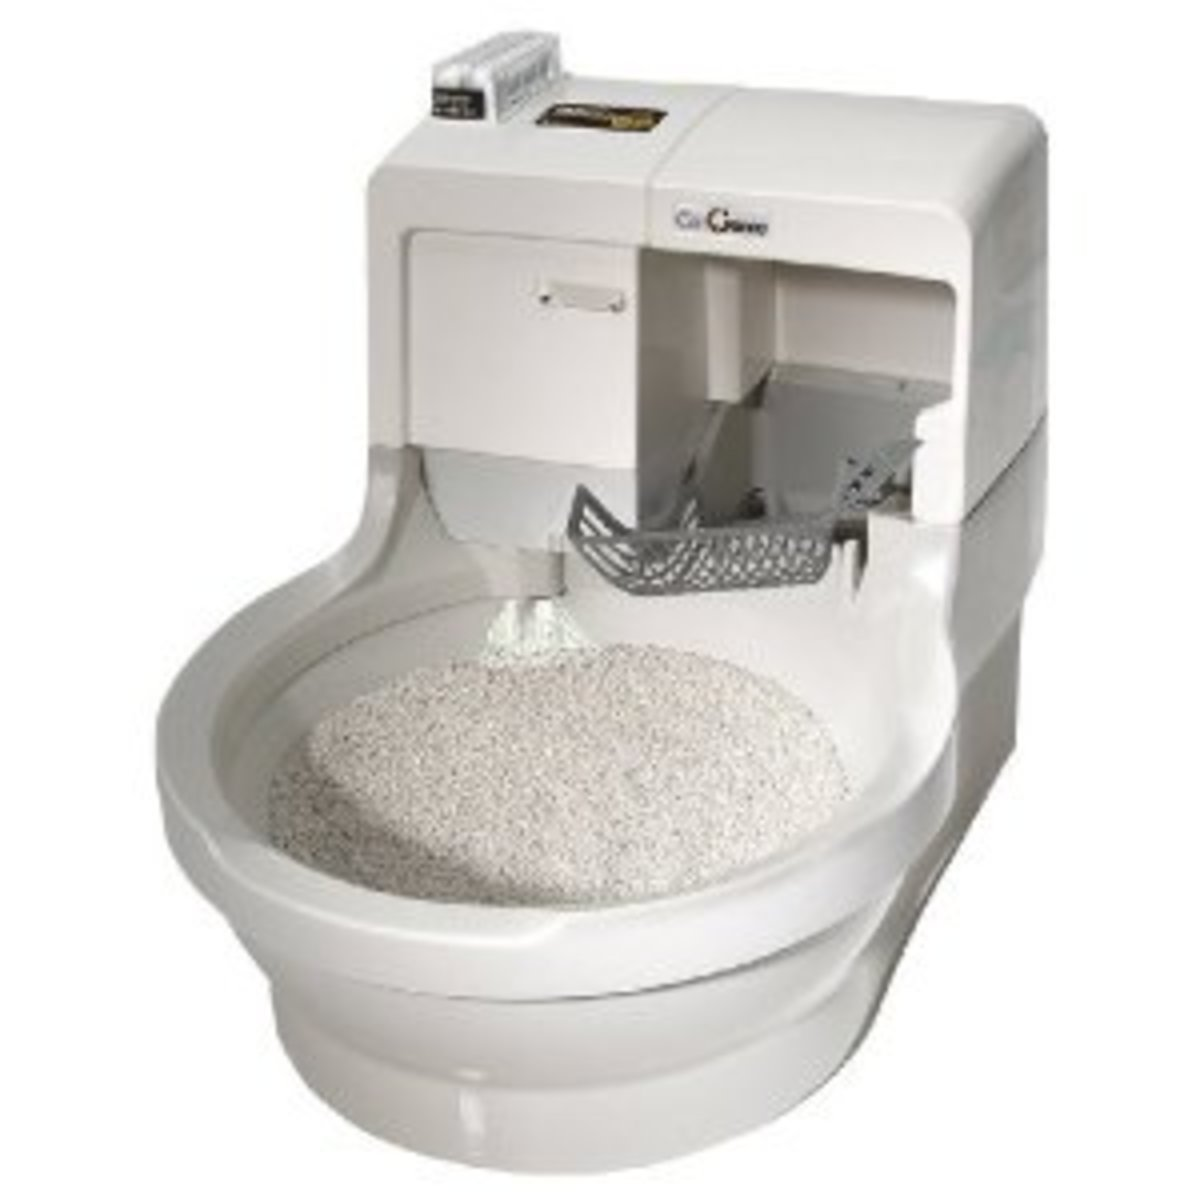 CatGenie 120 - The Self-Washing Self-Flushing Cat Litter Box for Owners of Multiple Cats